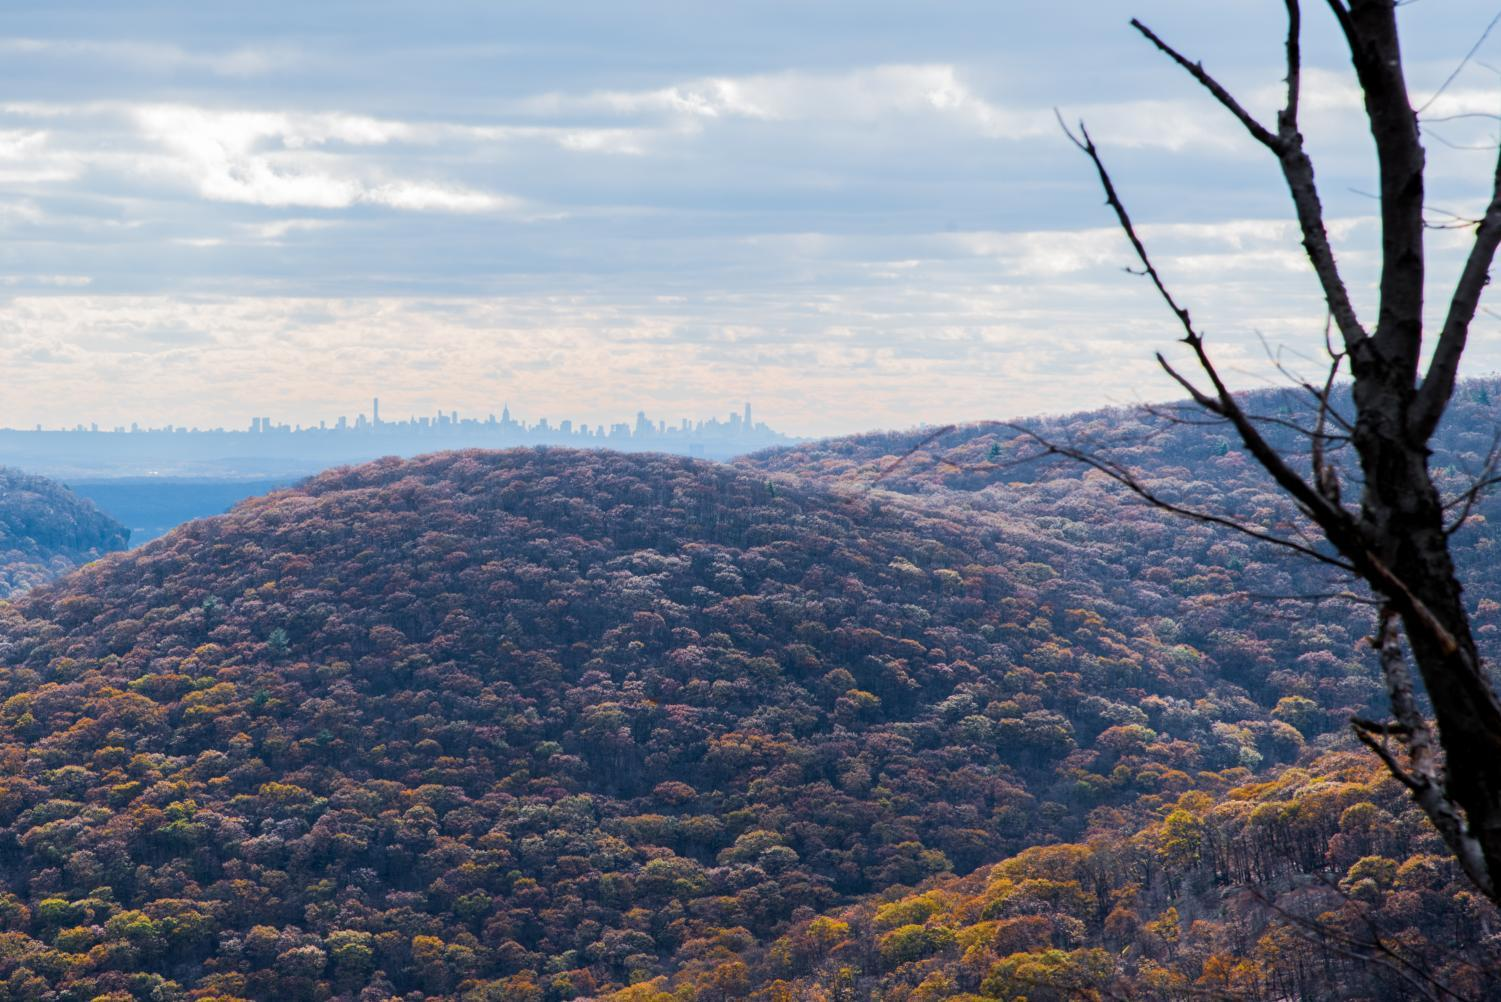 From atop Bear Mountain, less than two hours away from New York City by train, hikers can make out the Manhattan skyline.